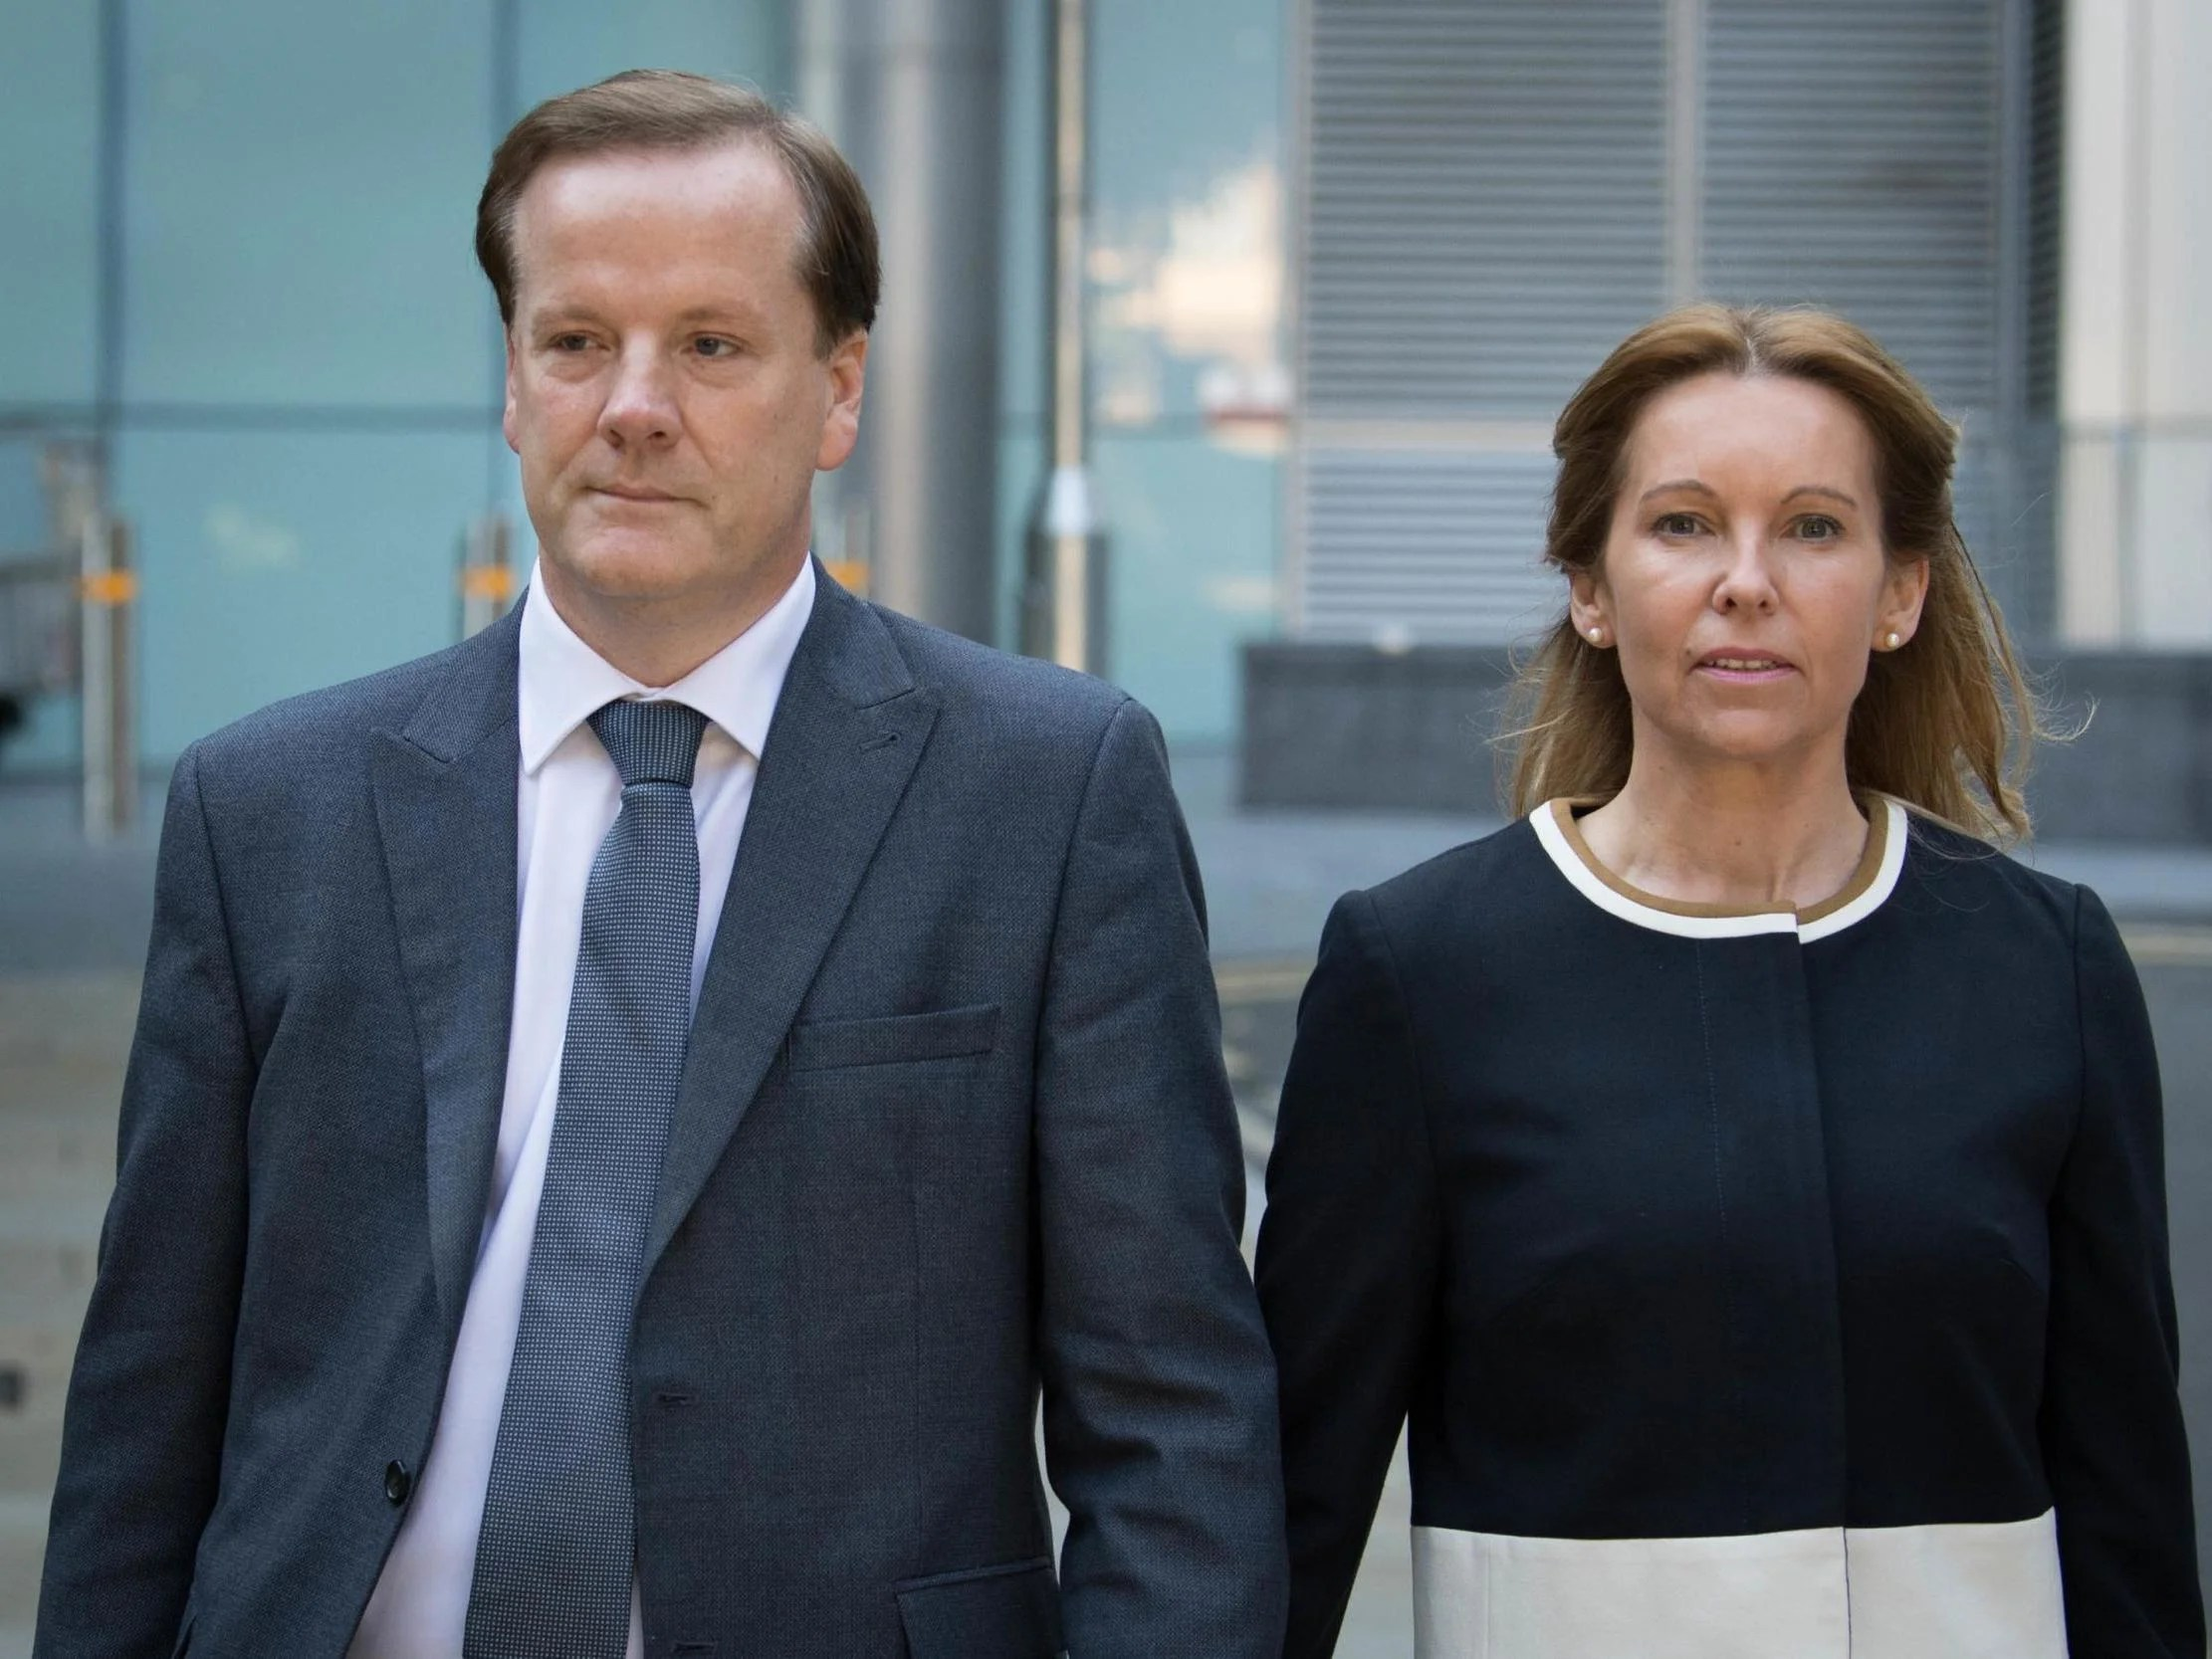 Charlie Elphicke Former Tory Mp Accused Of Groping Two